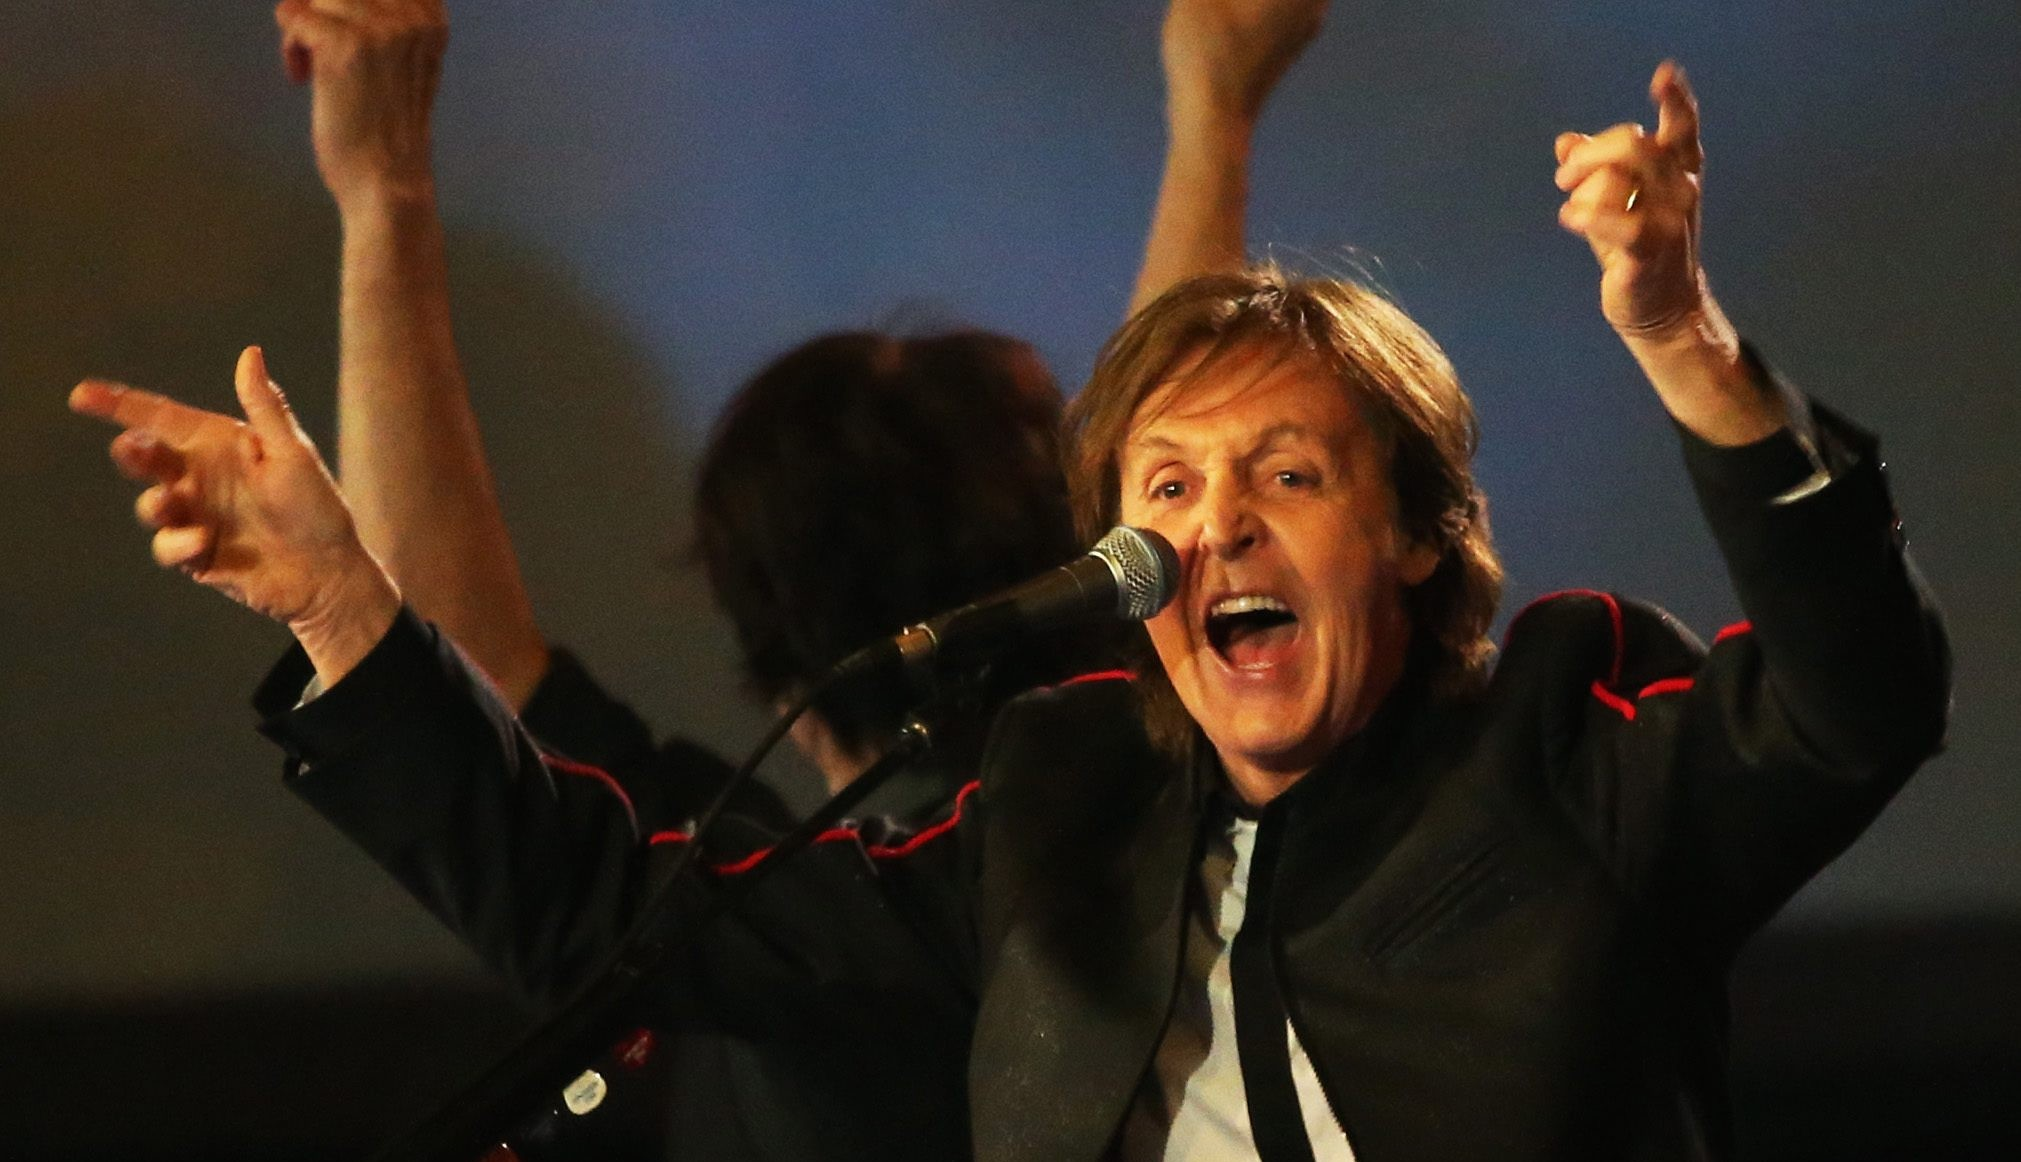 Paul McCartney to join Nirvana for reunion gig – Twitter reacts